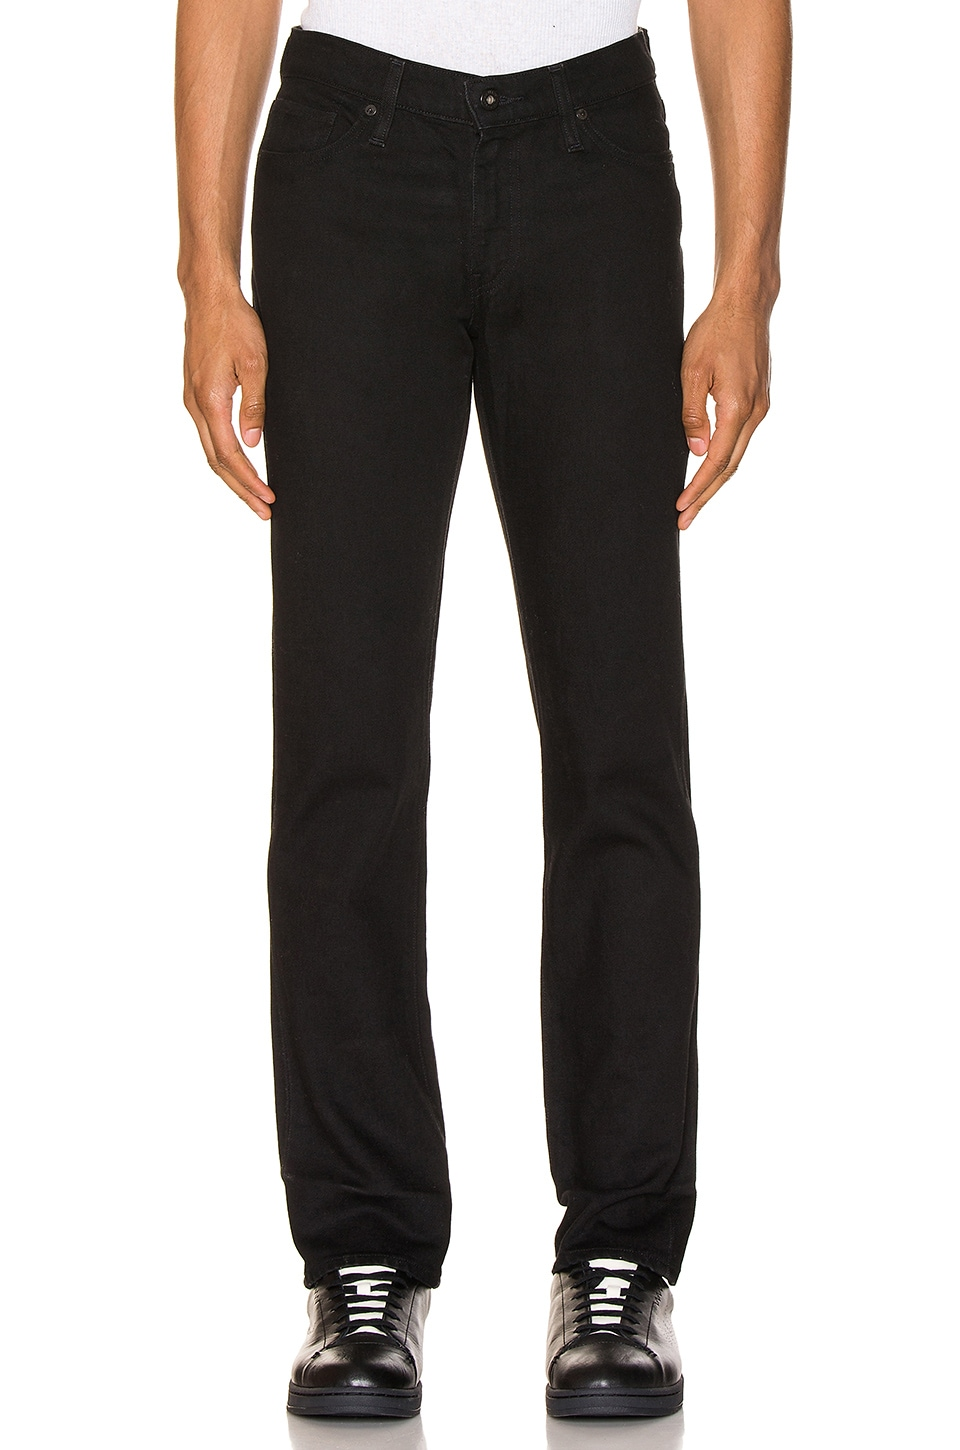 LEVI'S: Made & Crafted 511 in Black Rinse 1 Selvedge